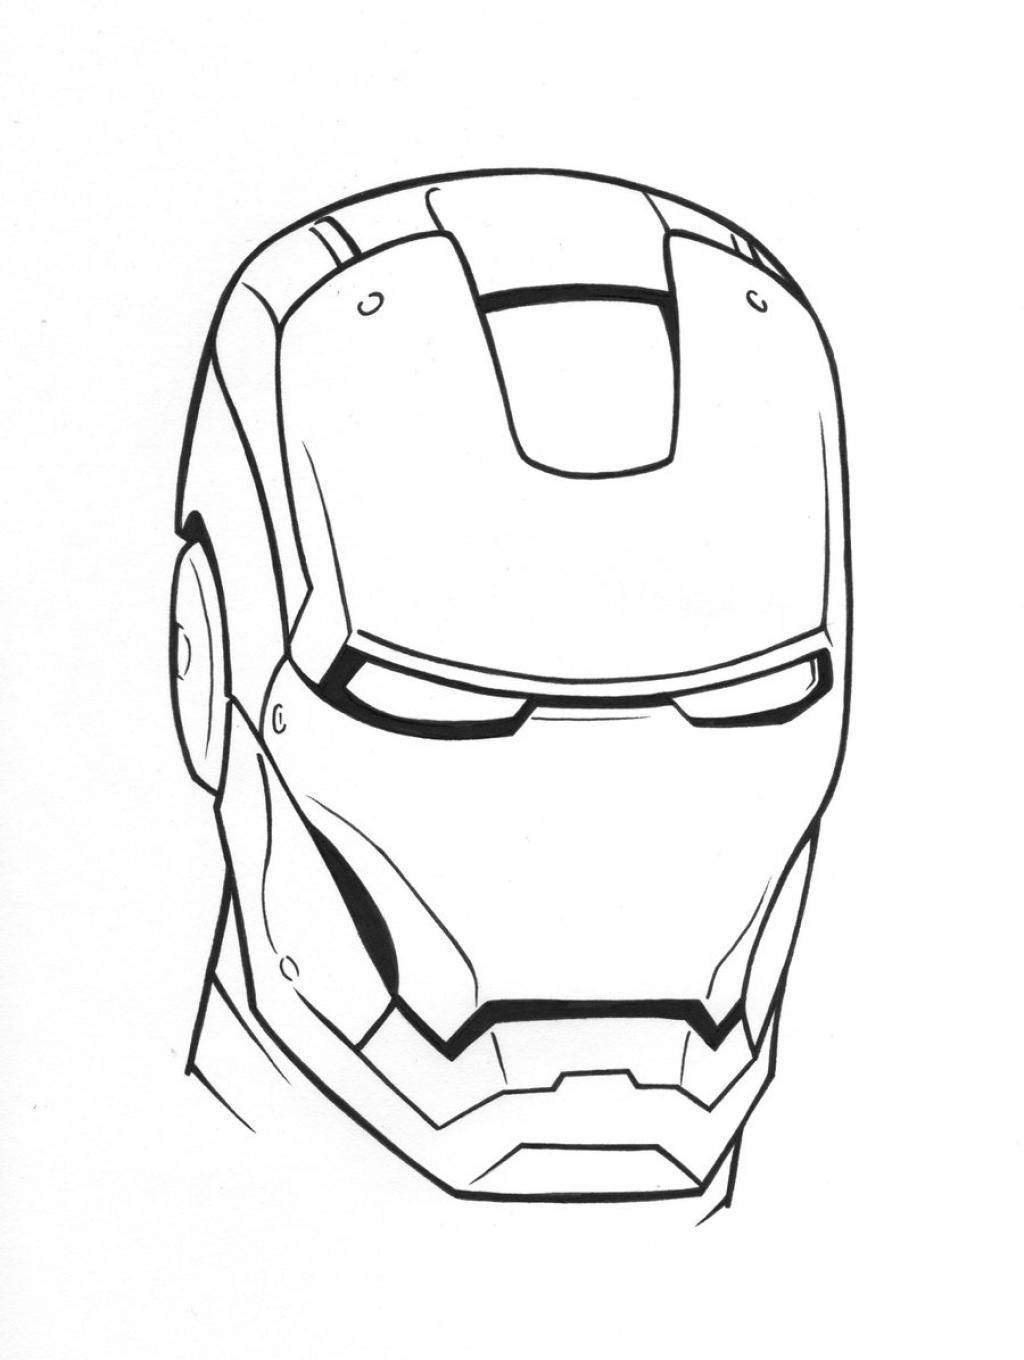 disney cars coloring pages - masque iron man